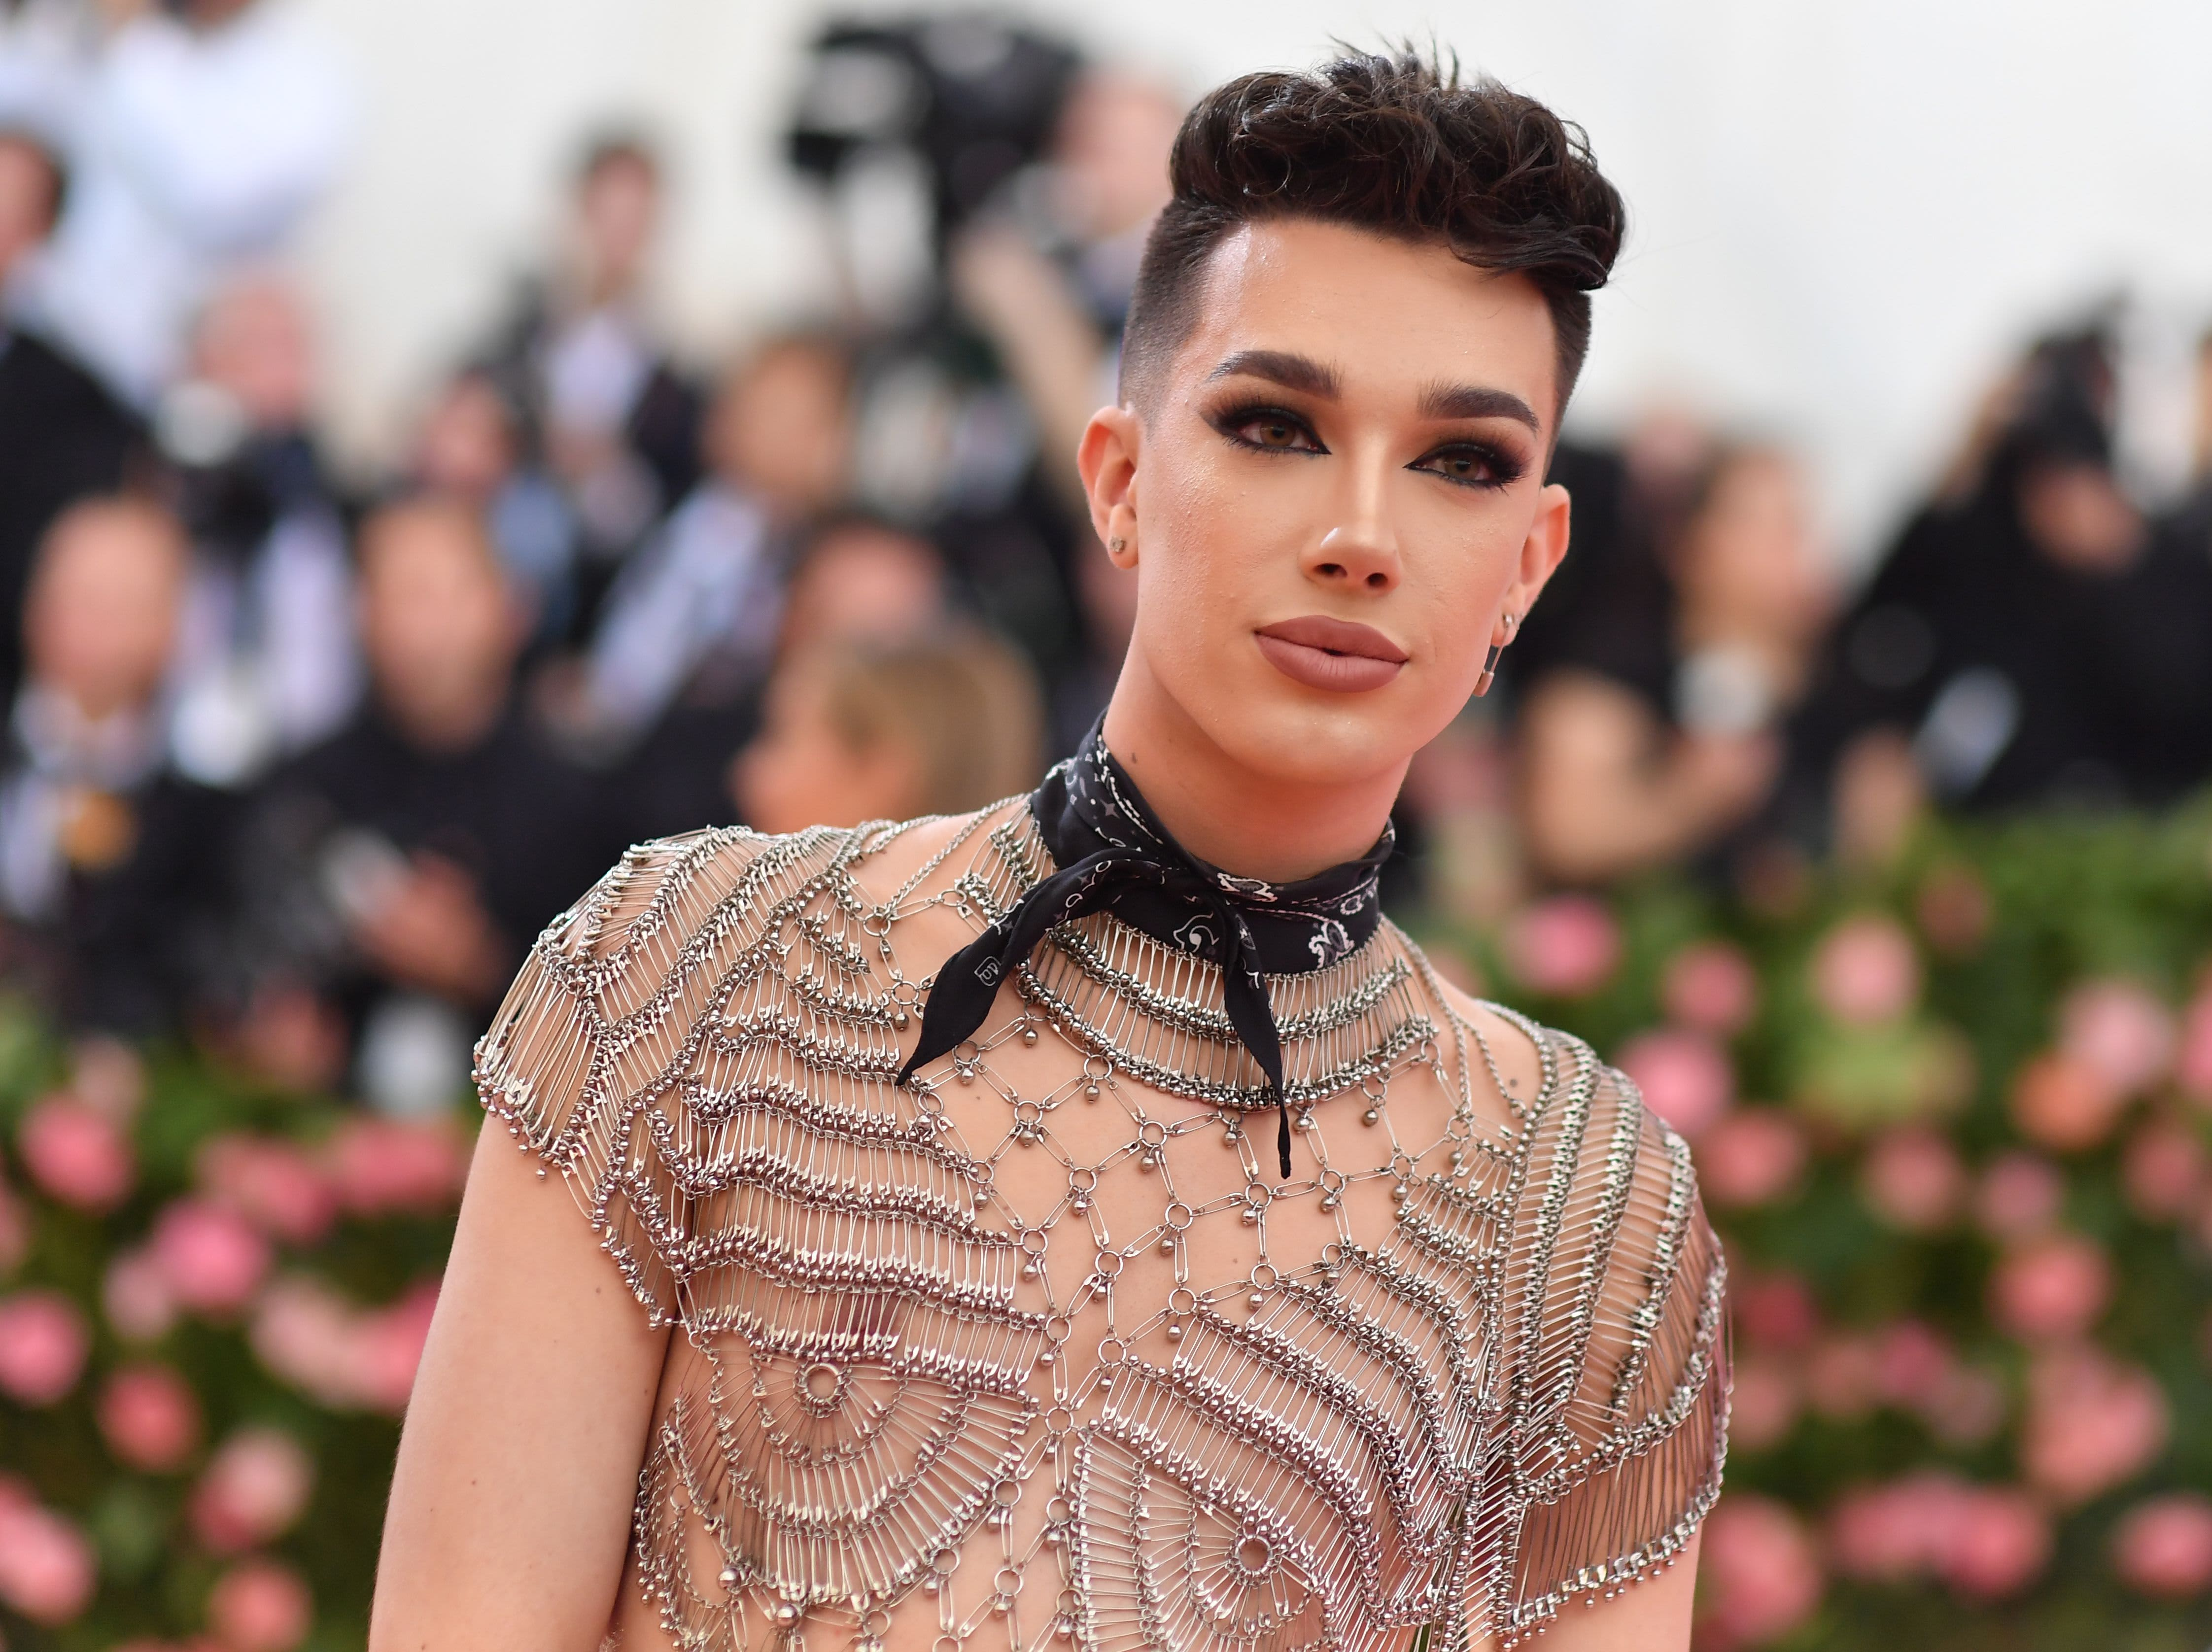 US internet personality James Charles arrives for the 2019 Met Gala at the Metropolitan Museum of Art on May 6, 2019, in New York.